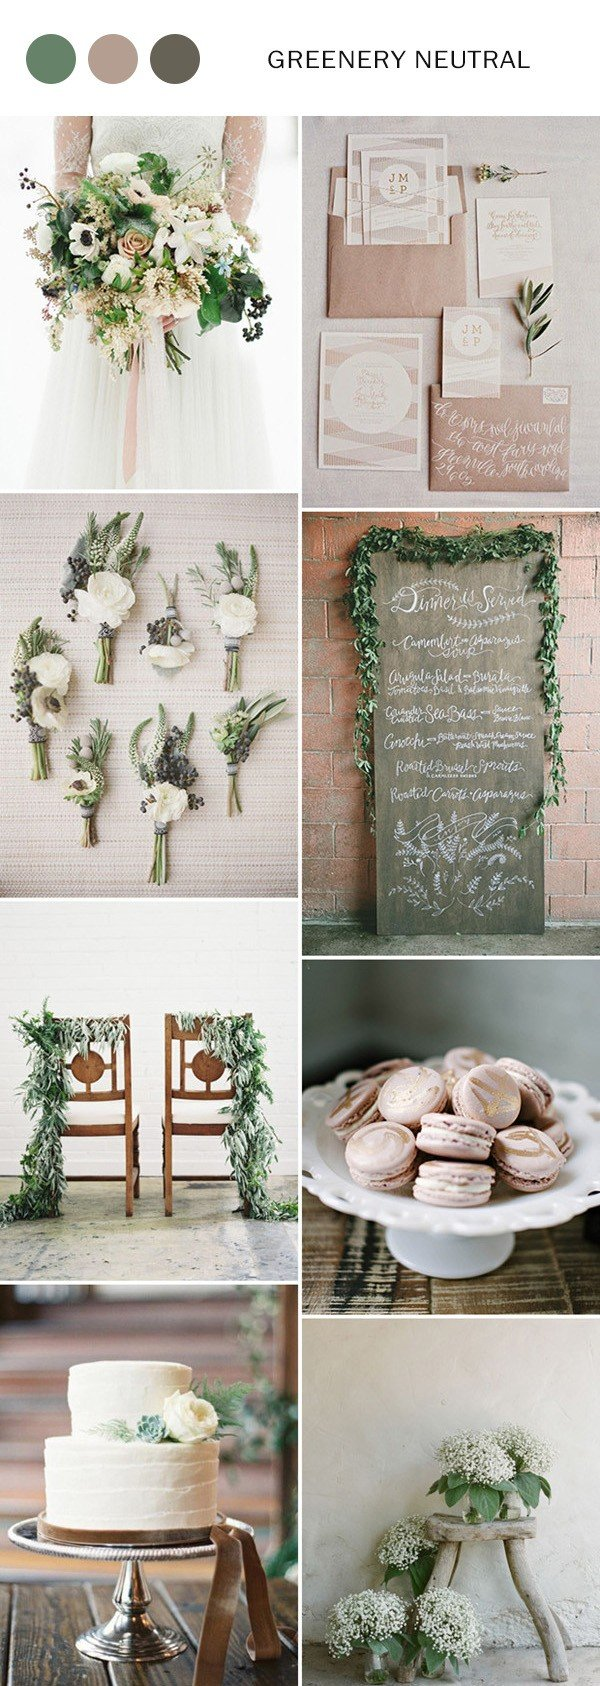 green and brown neutral wedding color ideas 2018